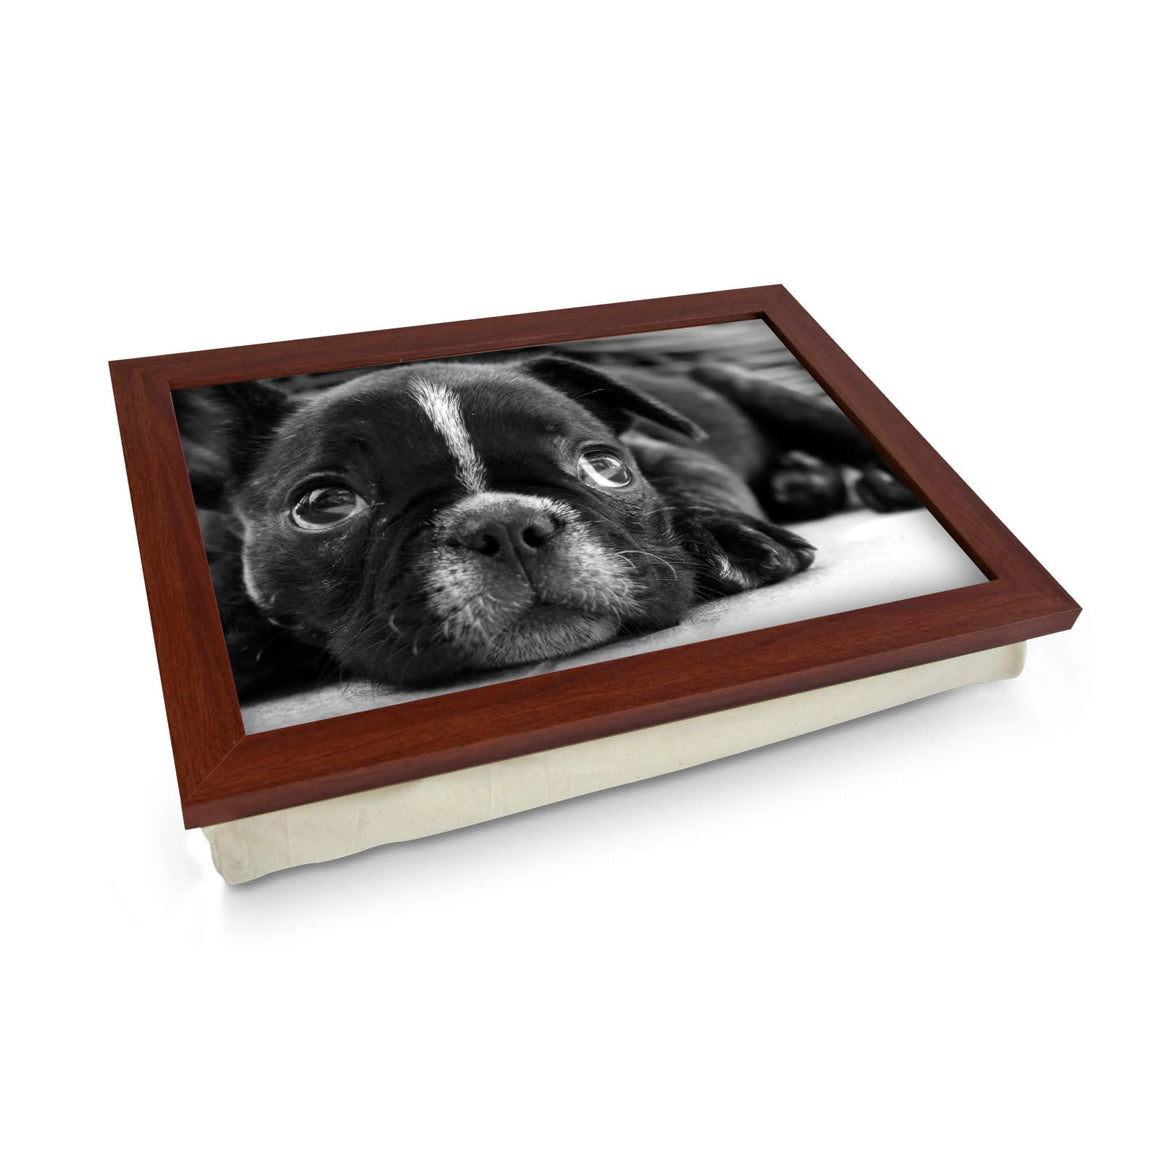 French Bulldog laptray